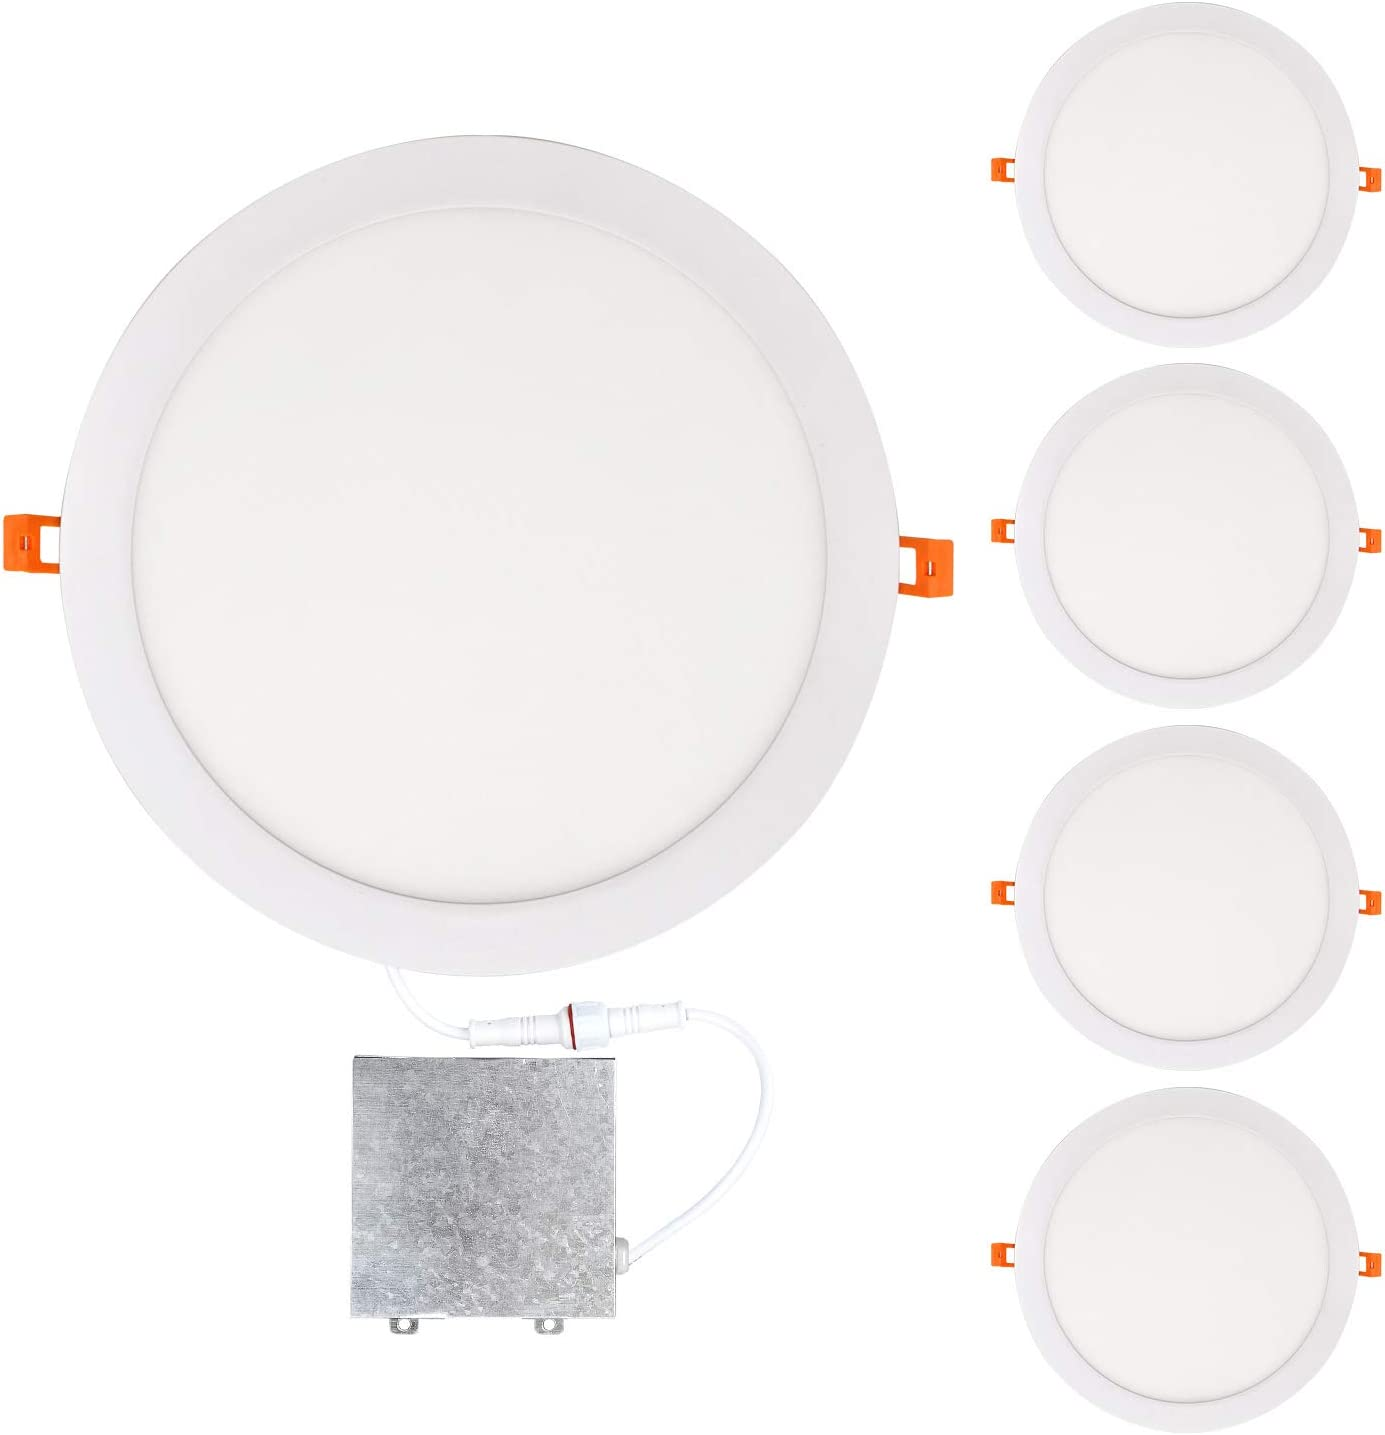 OSTWIN Sales 4 Pack Popular brand in the world 12 inch IC Rated LED Low R Recessed Slim Profile